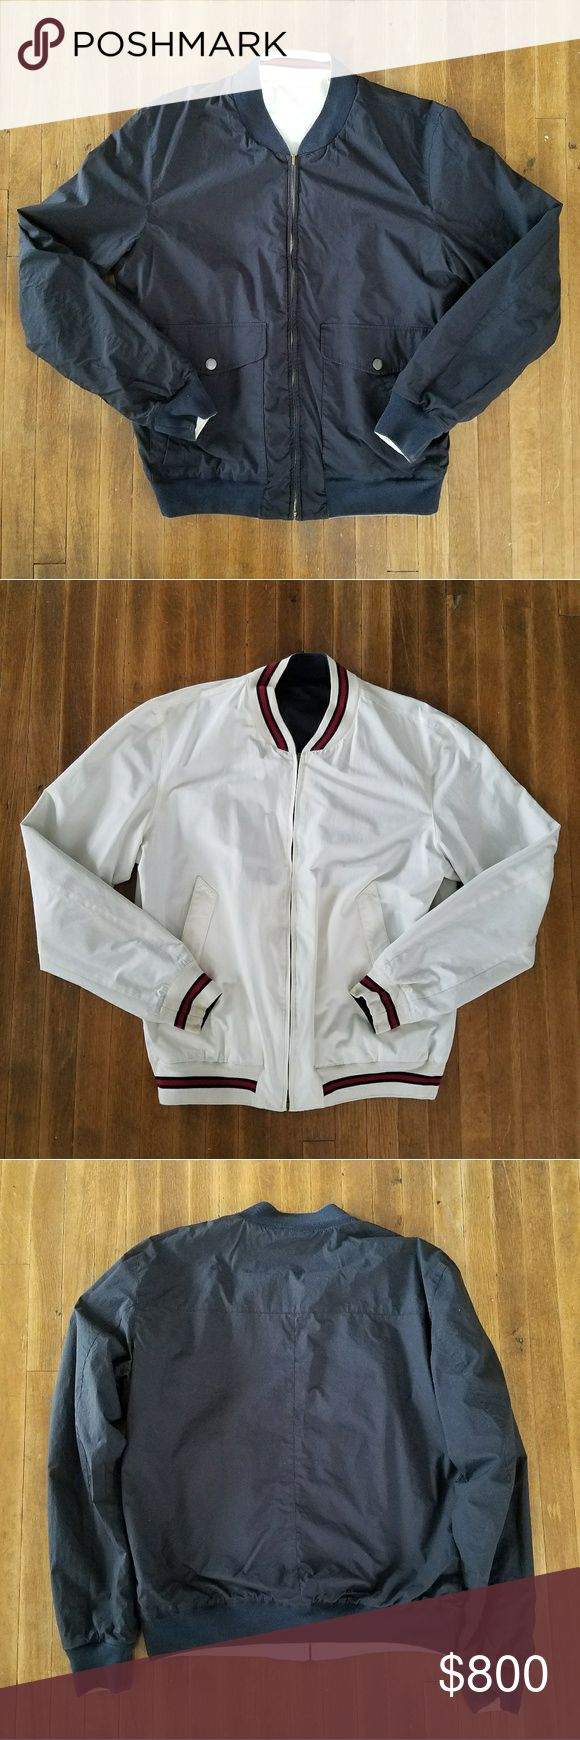 GUCCI REVERSIBLE MEN'S BOMBER JACKET Reversible Gucci bomber in navy and white Gucci Jackets & Coats Bomber & Varsity